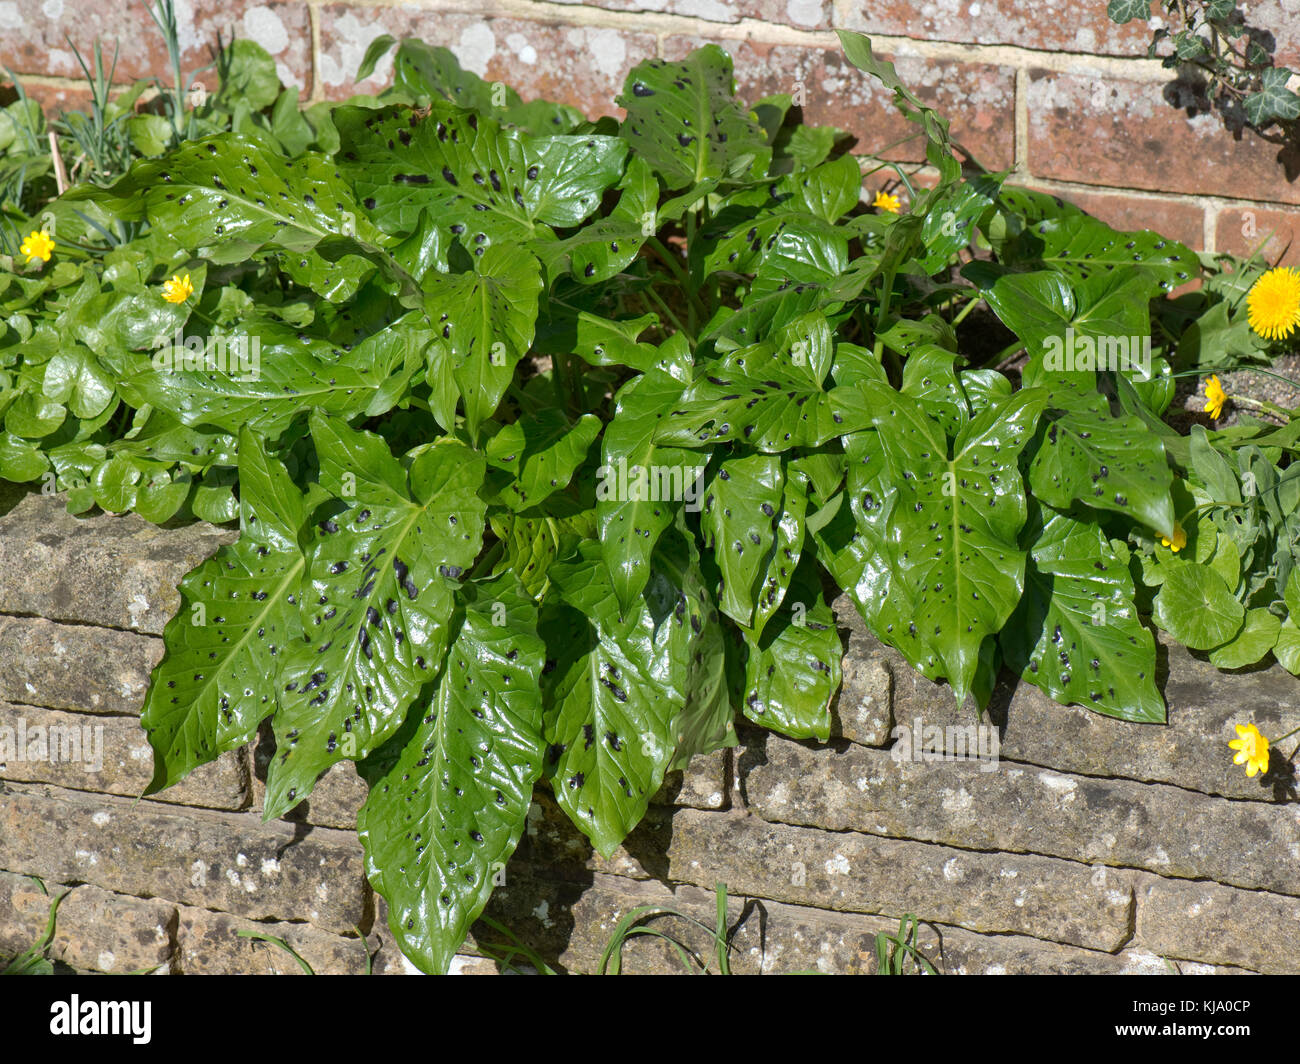 Young glossy green spotted arrow-shaped leaves of lords and ladies or wild arum, Arum maculatum, in early spring, - Stock Image